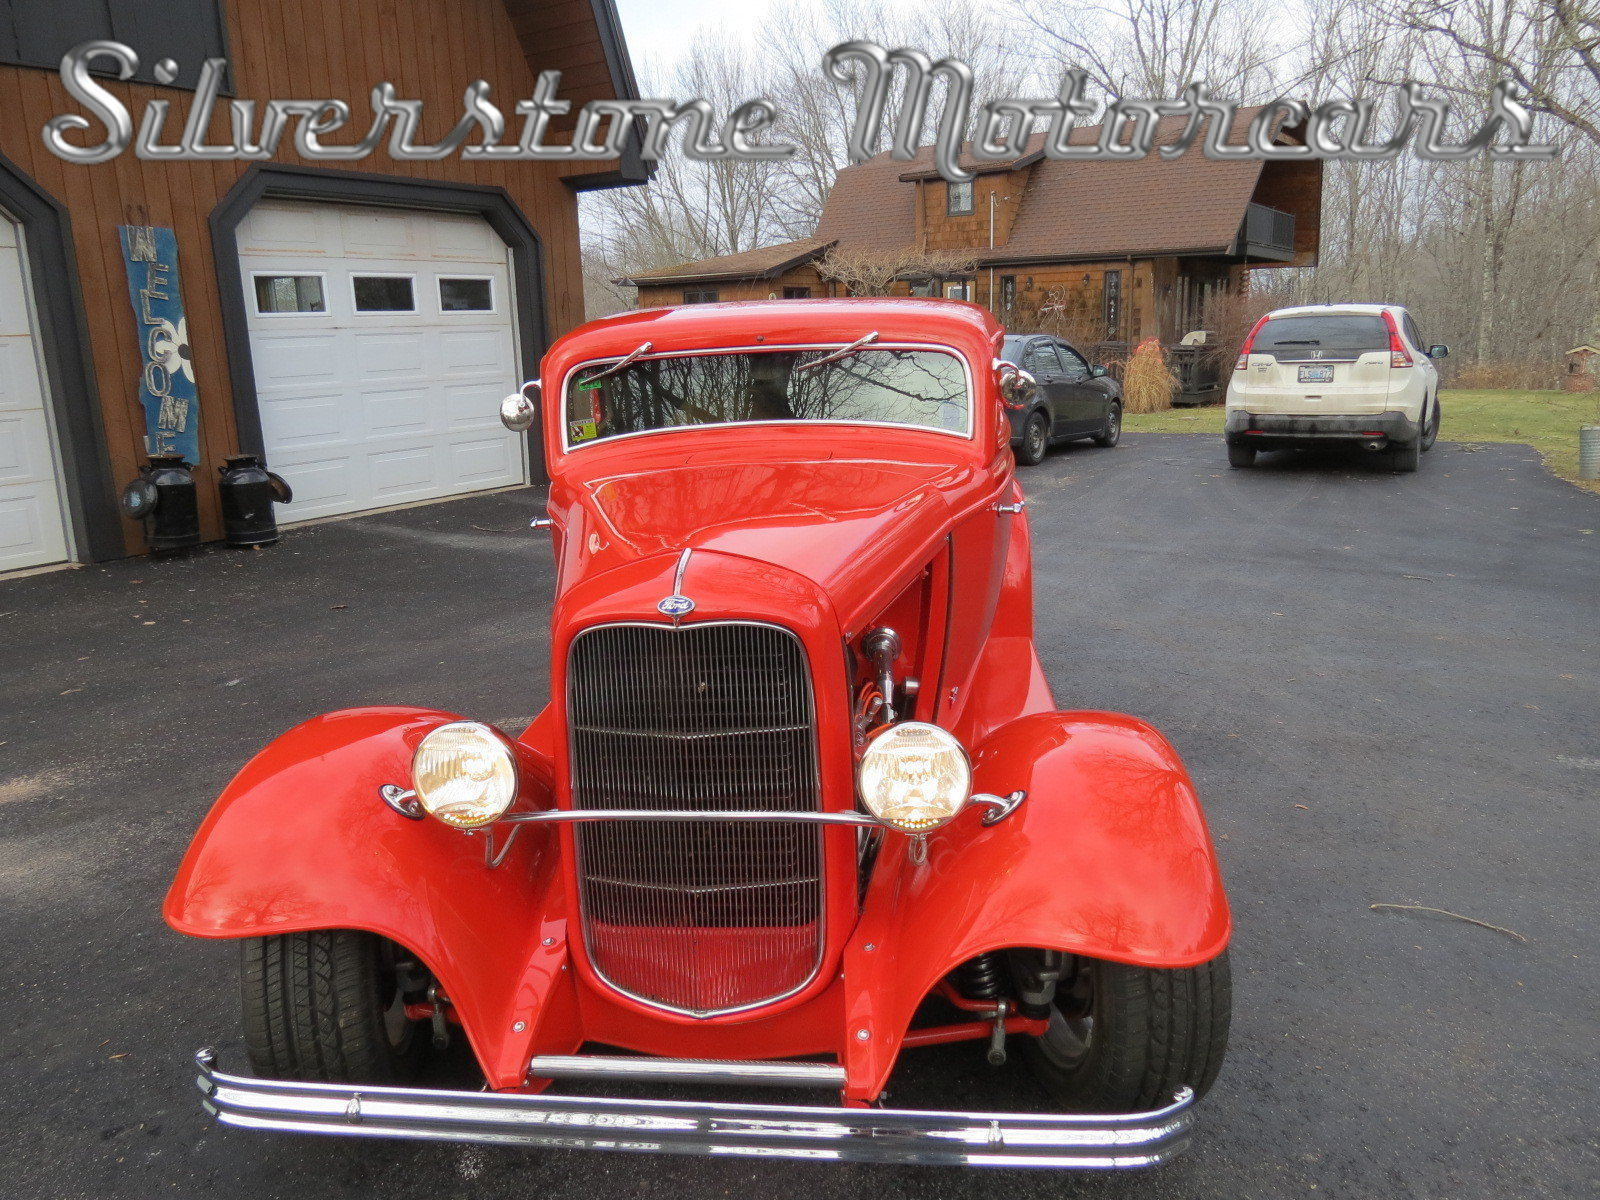 1932 Ford Coupe Silverstone Motorcars Fuel Filter